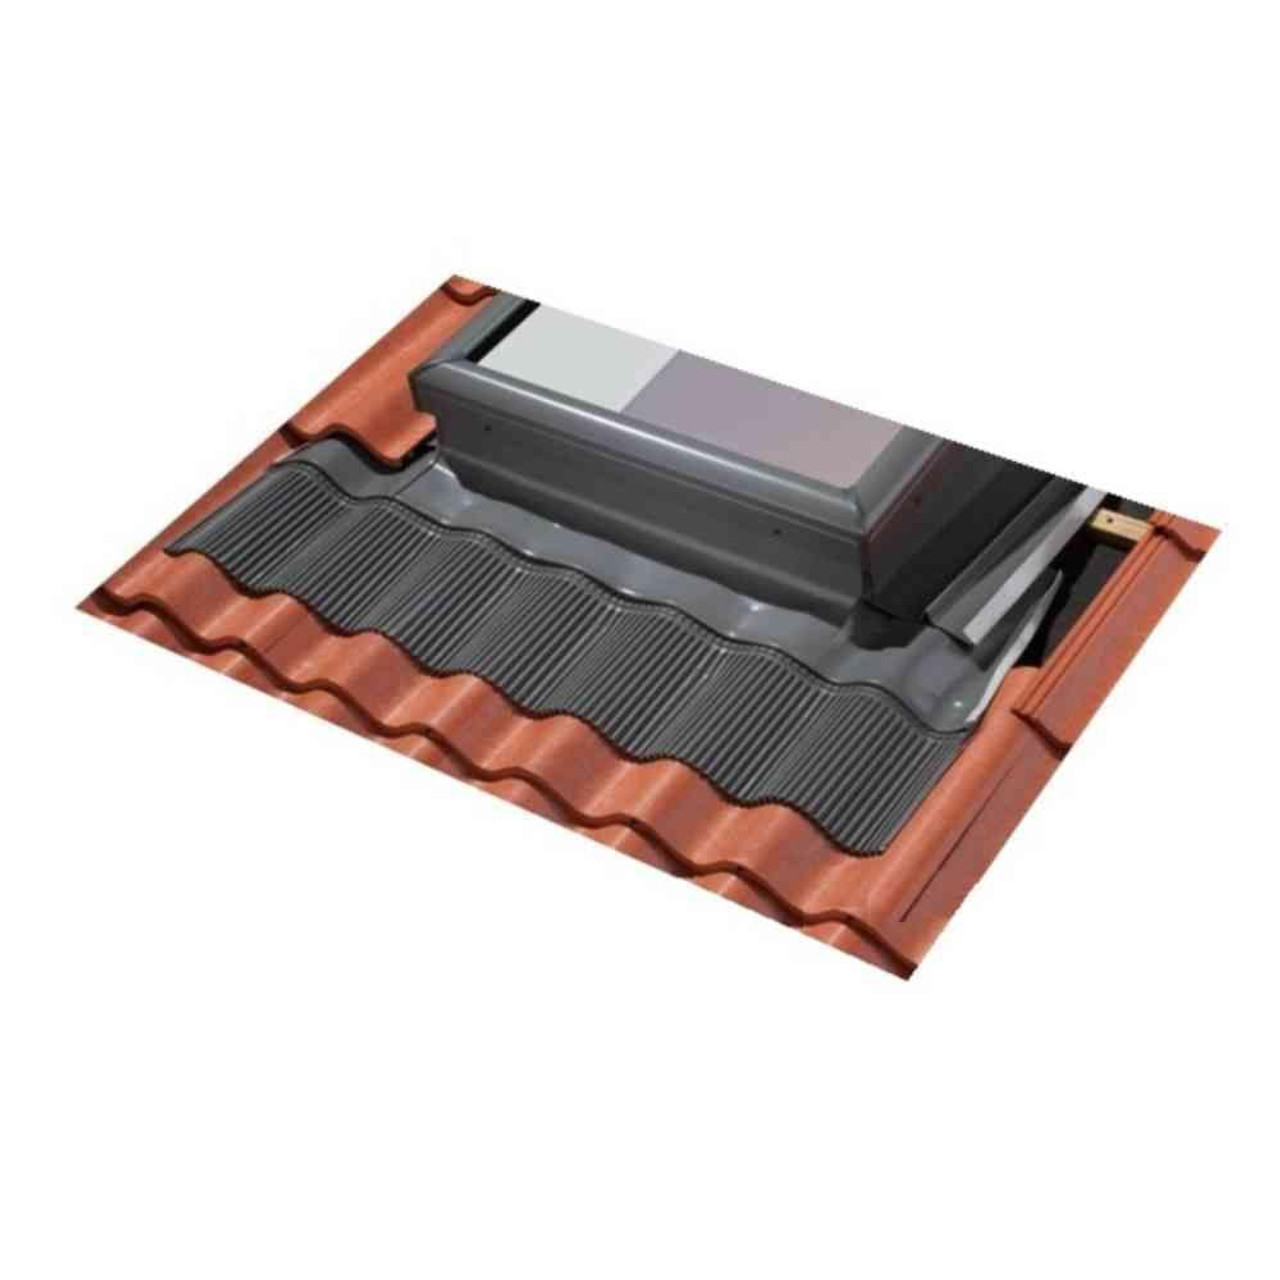 3446 Low-Profile Shingle Roof Flashing w//Adhesive Underlayment for Curb Mount Skylights VELUX ECL 3446 0000C Skylight Flashing